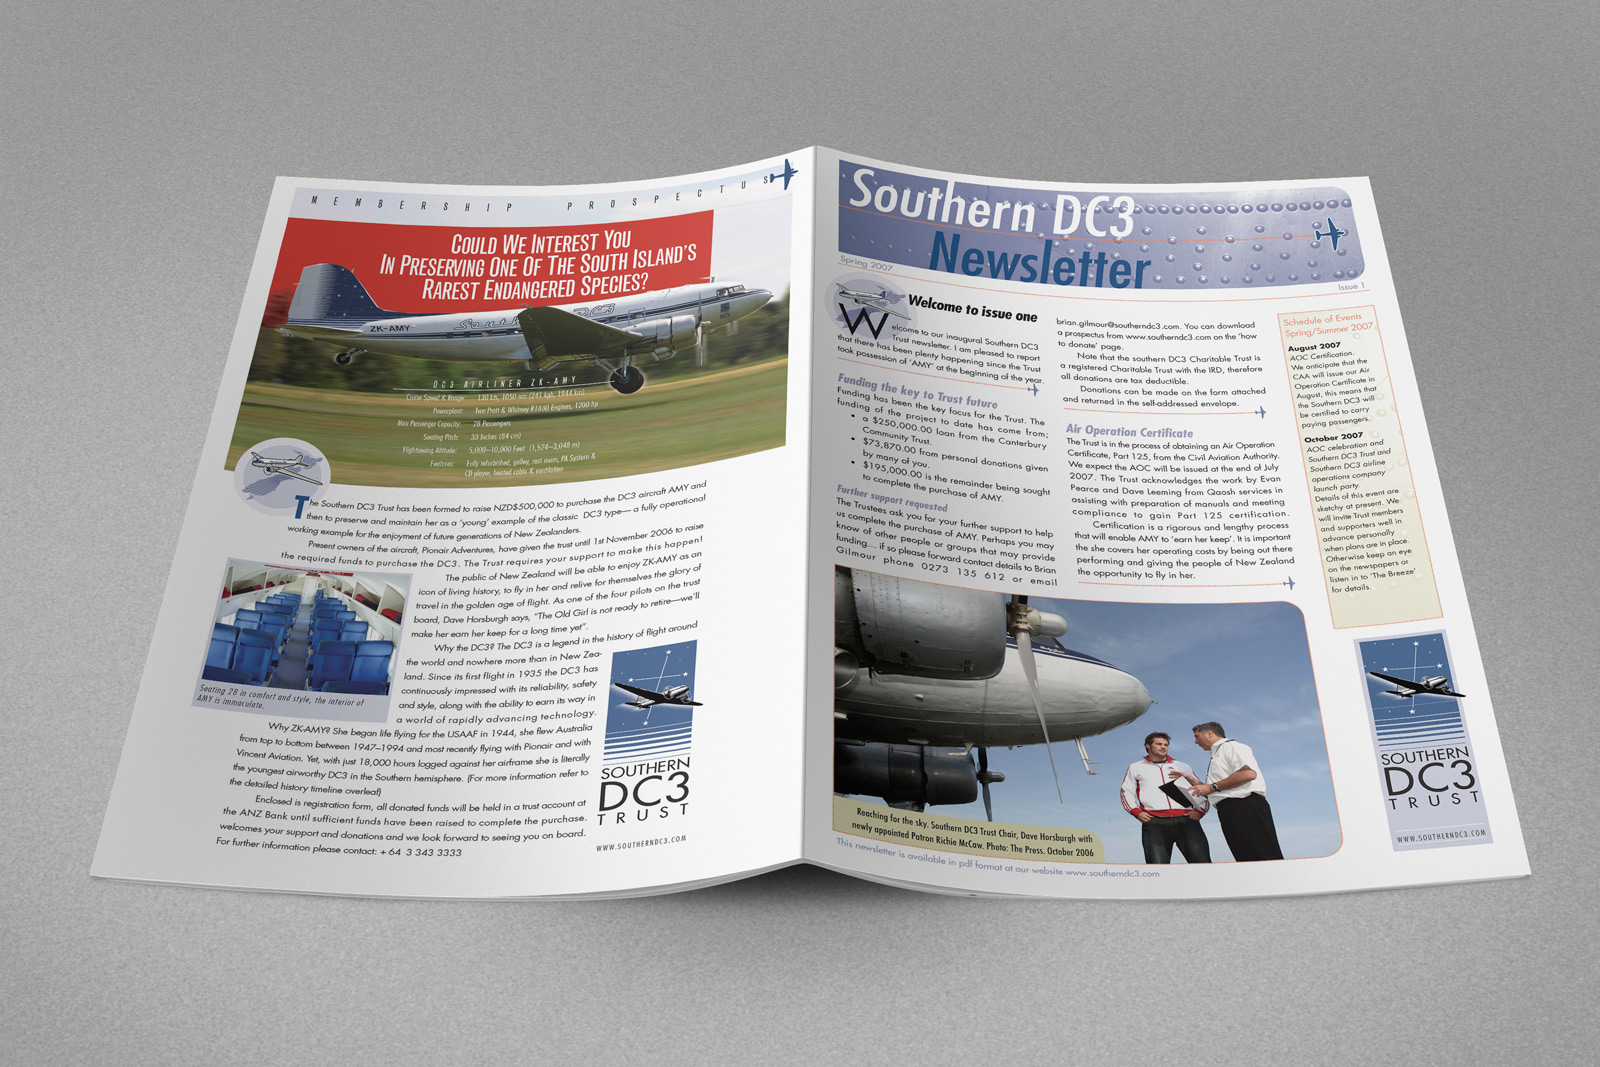 Southern DC3 Newsletter, Spring 2007, cover spread.